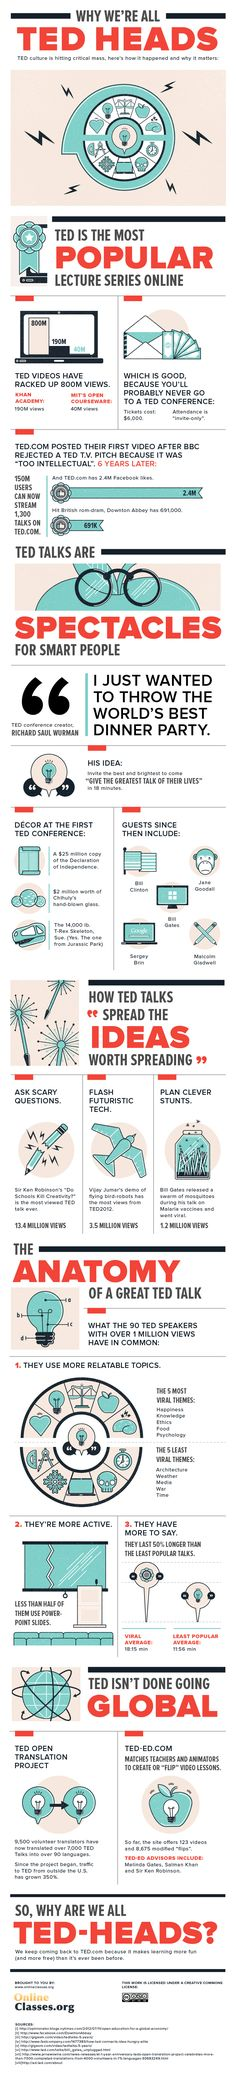 TED : The Greatest Platform Worth Sharing